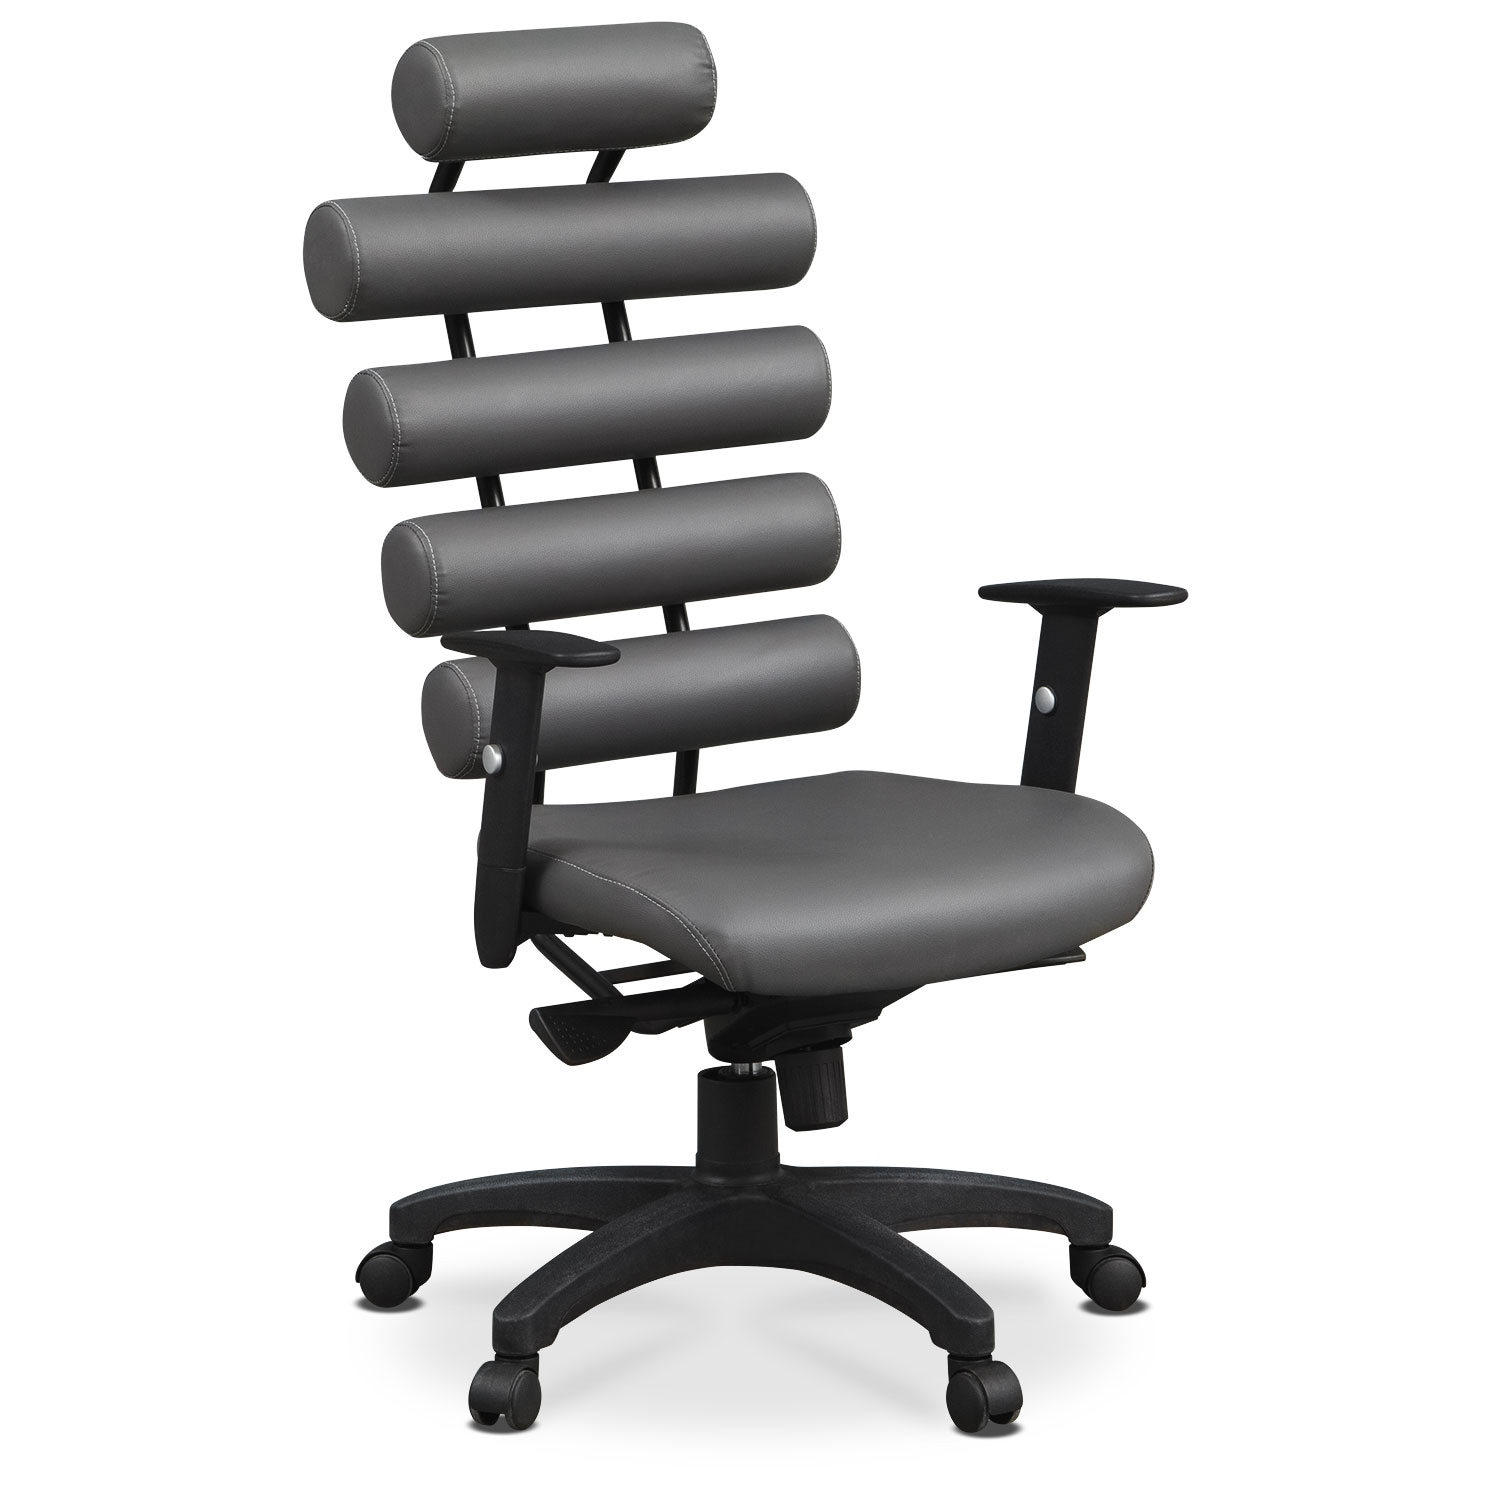 Home Office Furniture - Norton Office Arm Chair - Gray